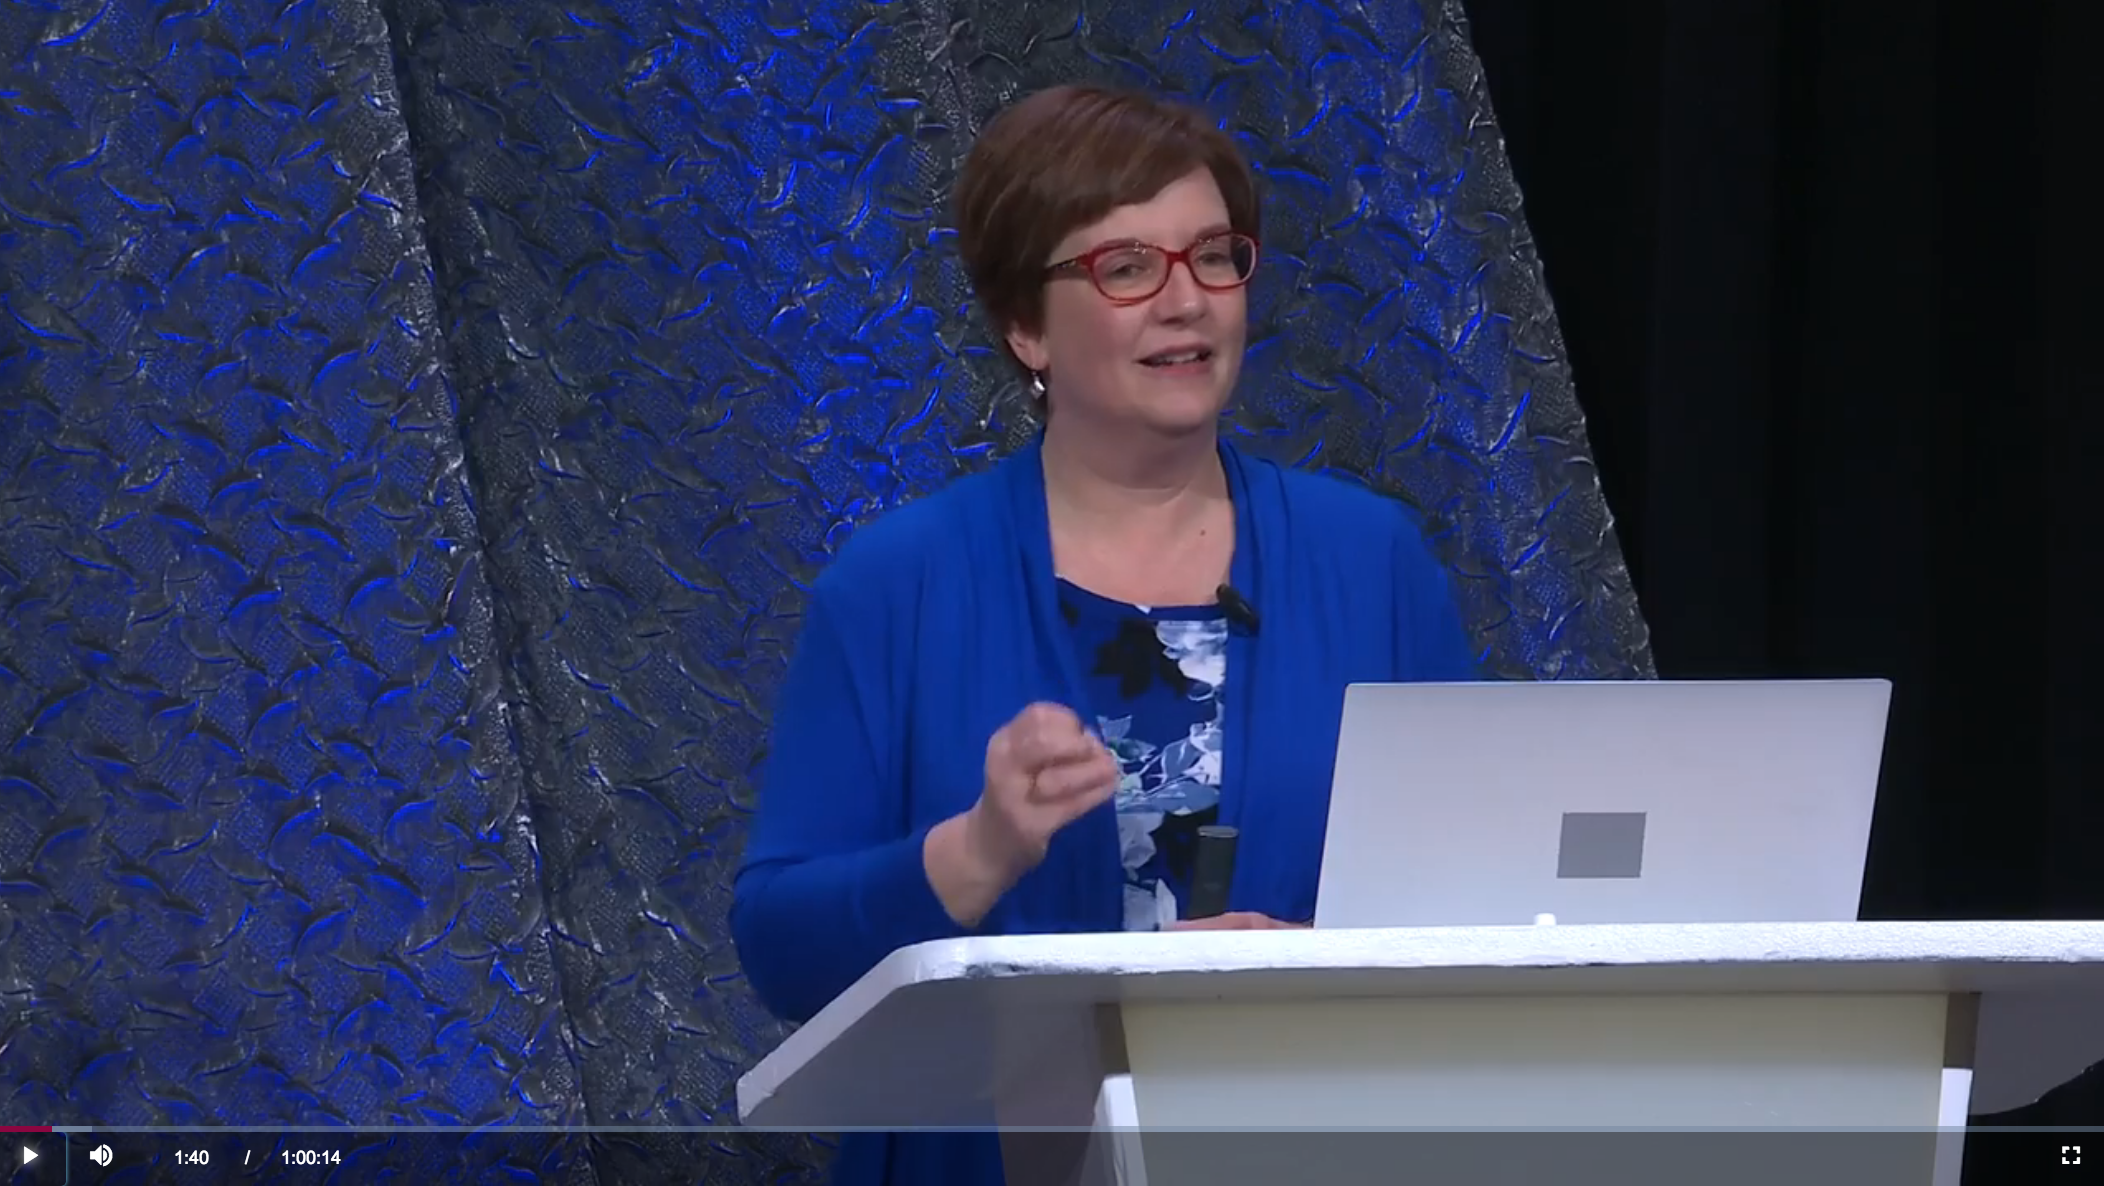 Author and speaker Amy Johnson Crow presenting at RootsTech 2019